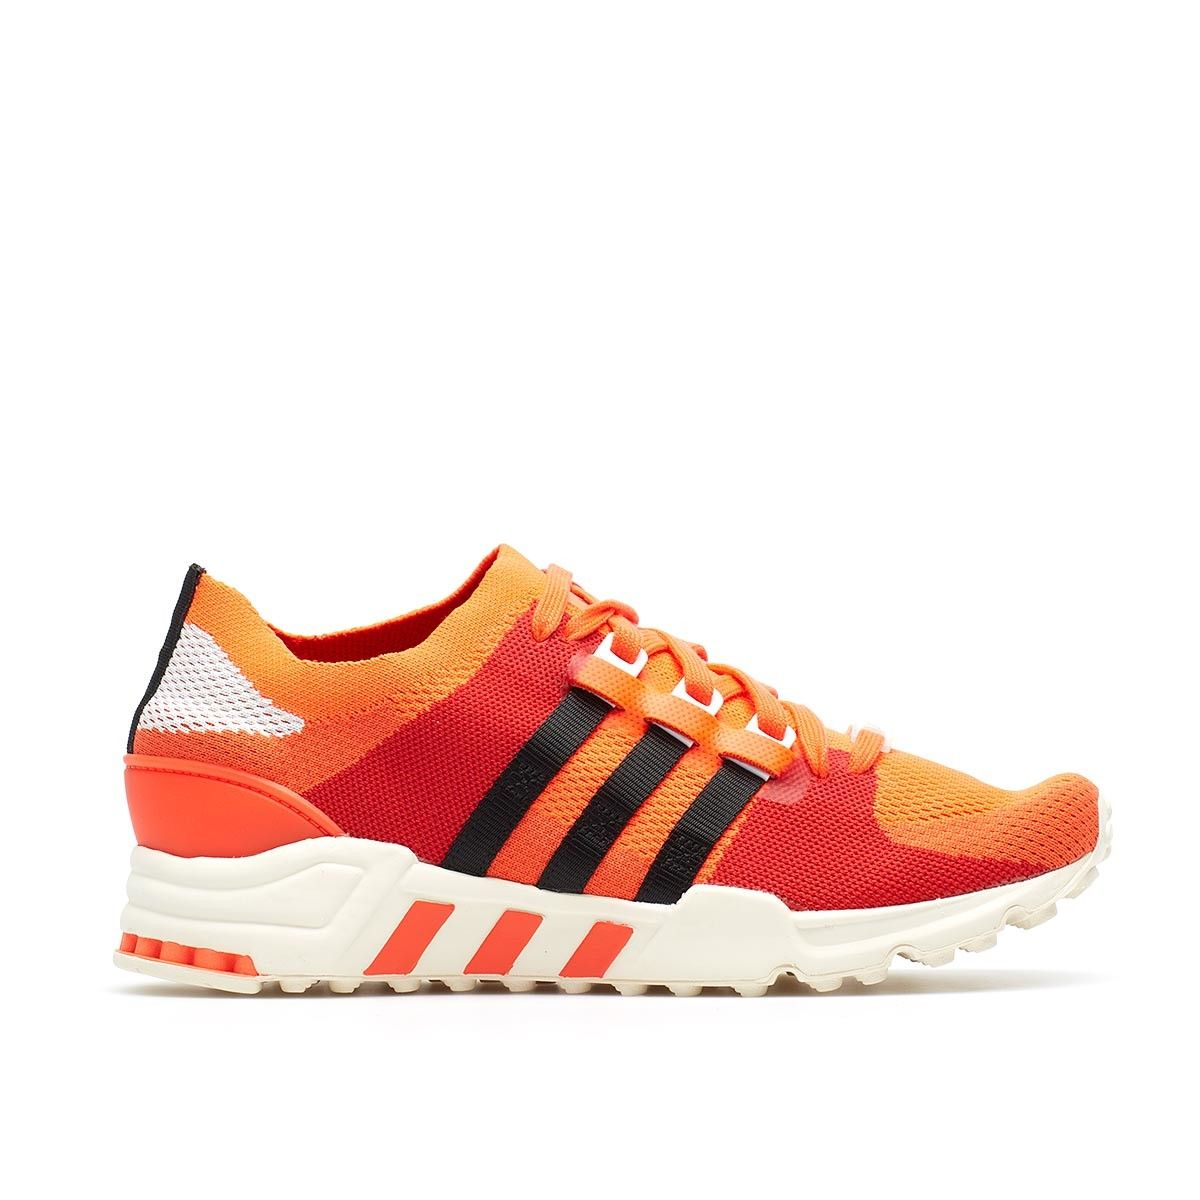 Originals EQT SUPPORT 93/17 Lifestyle BOOST Athletic & Sneakers